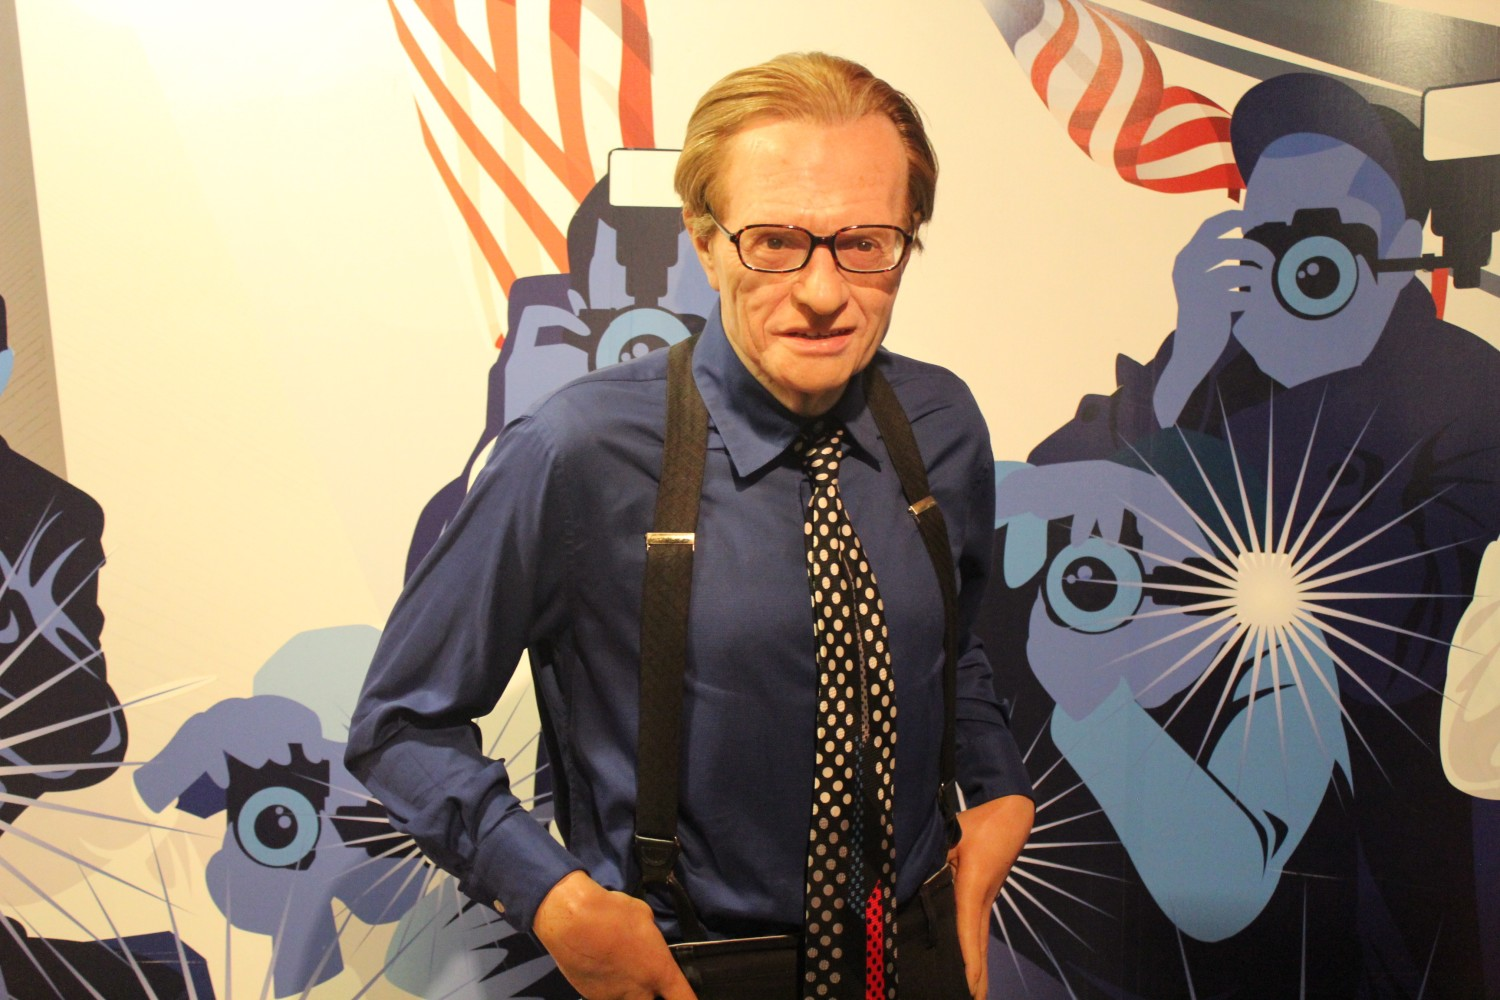 Larry King Wax Figure Madame Tussauds Washington D.C.